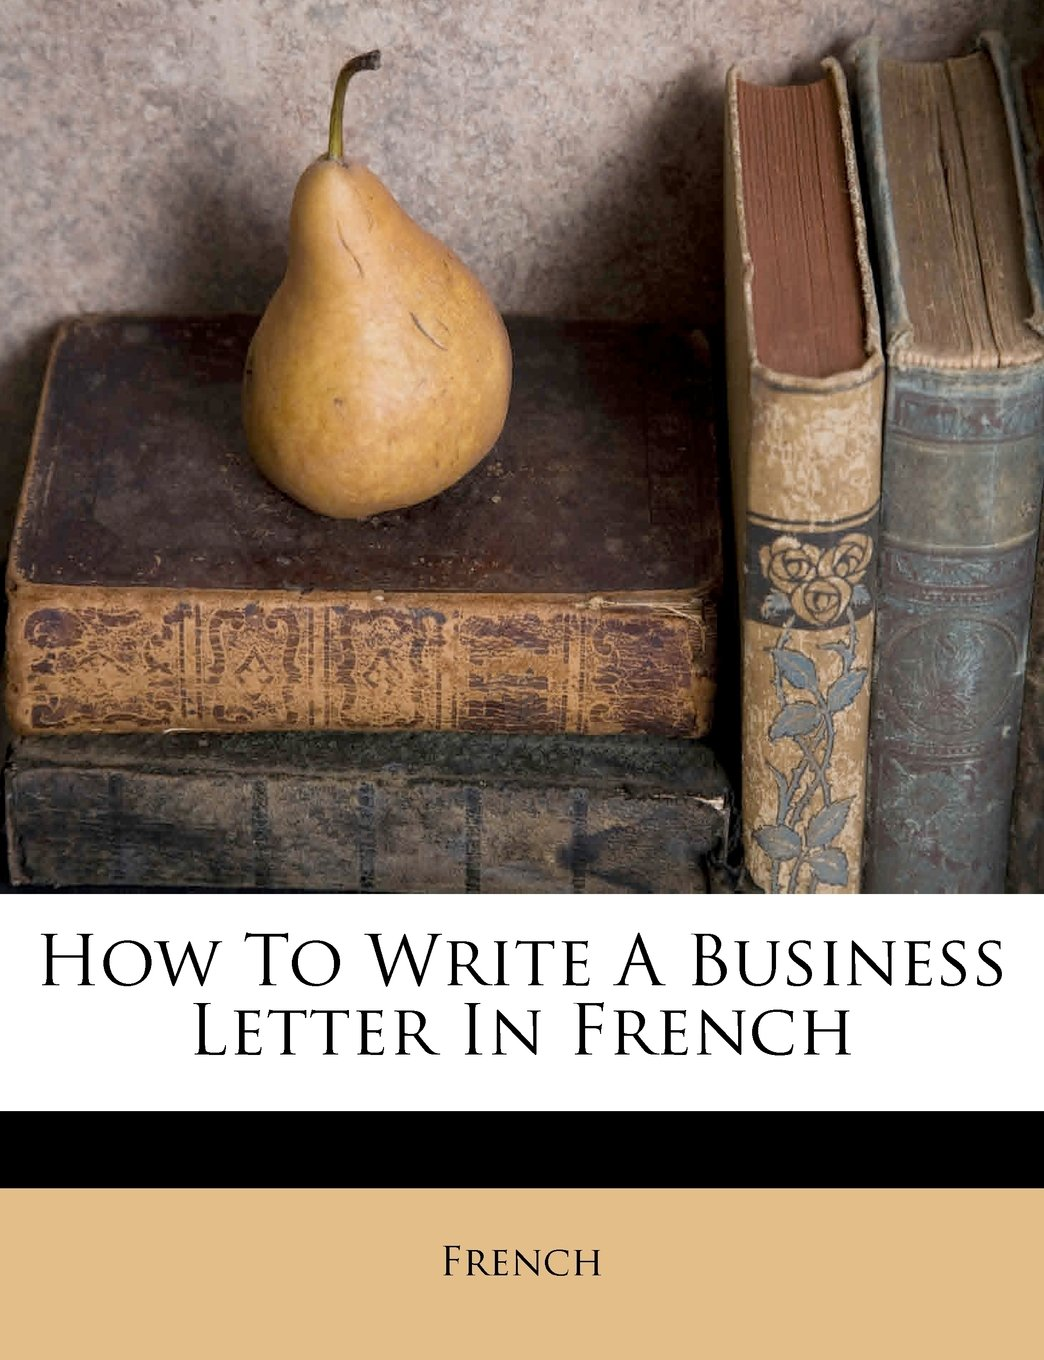 How to write a business letter in french french 9781248769614 how to write a business letter in french french 9781248769614 books amazon expocarfo Images